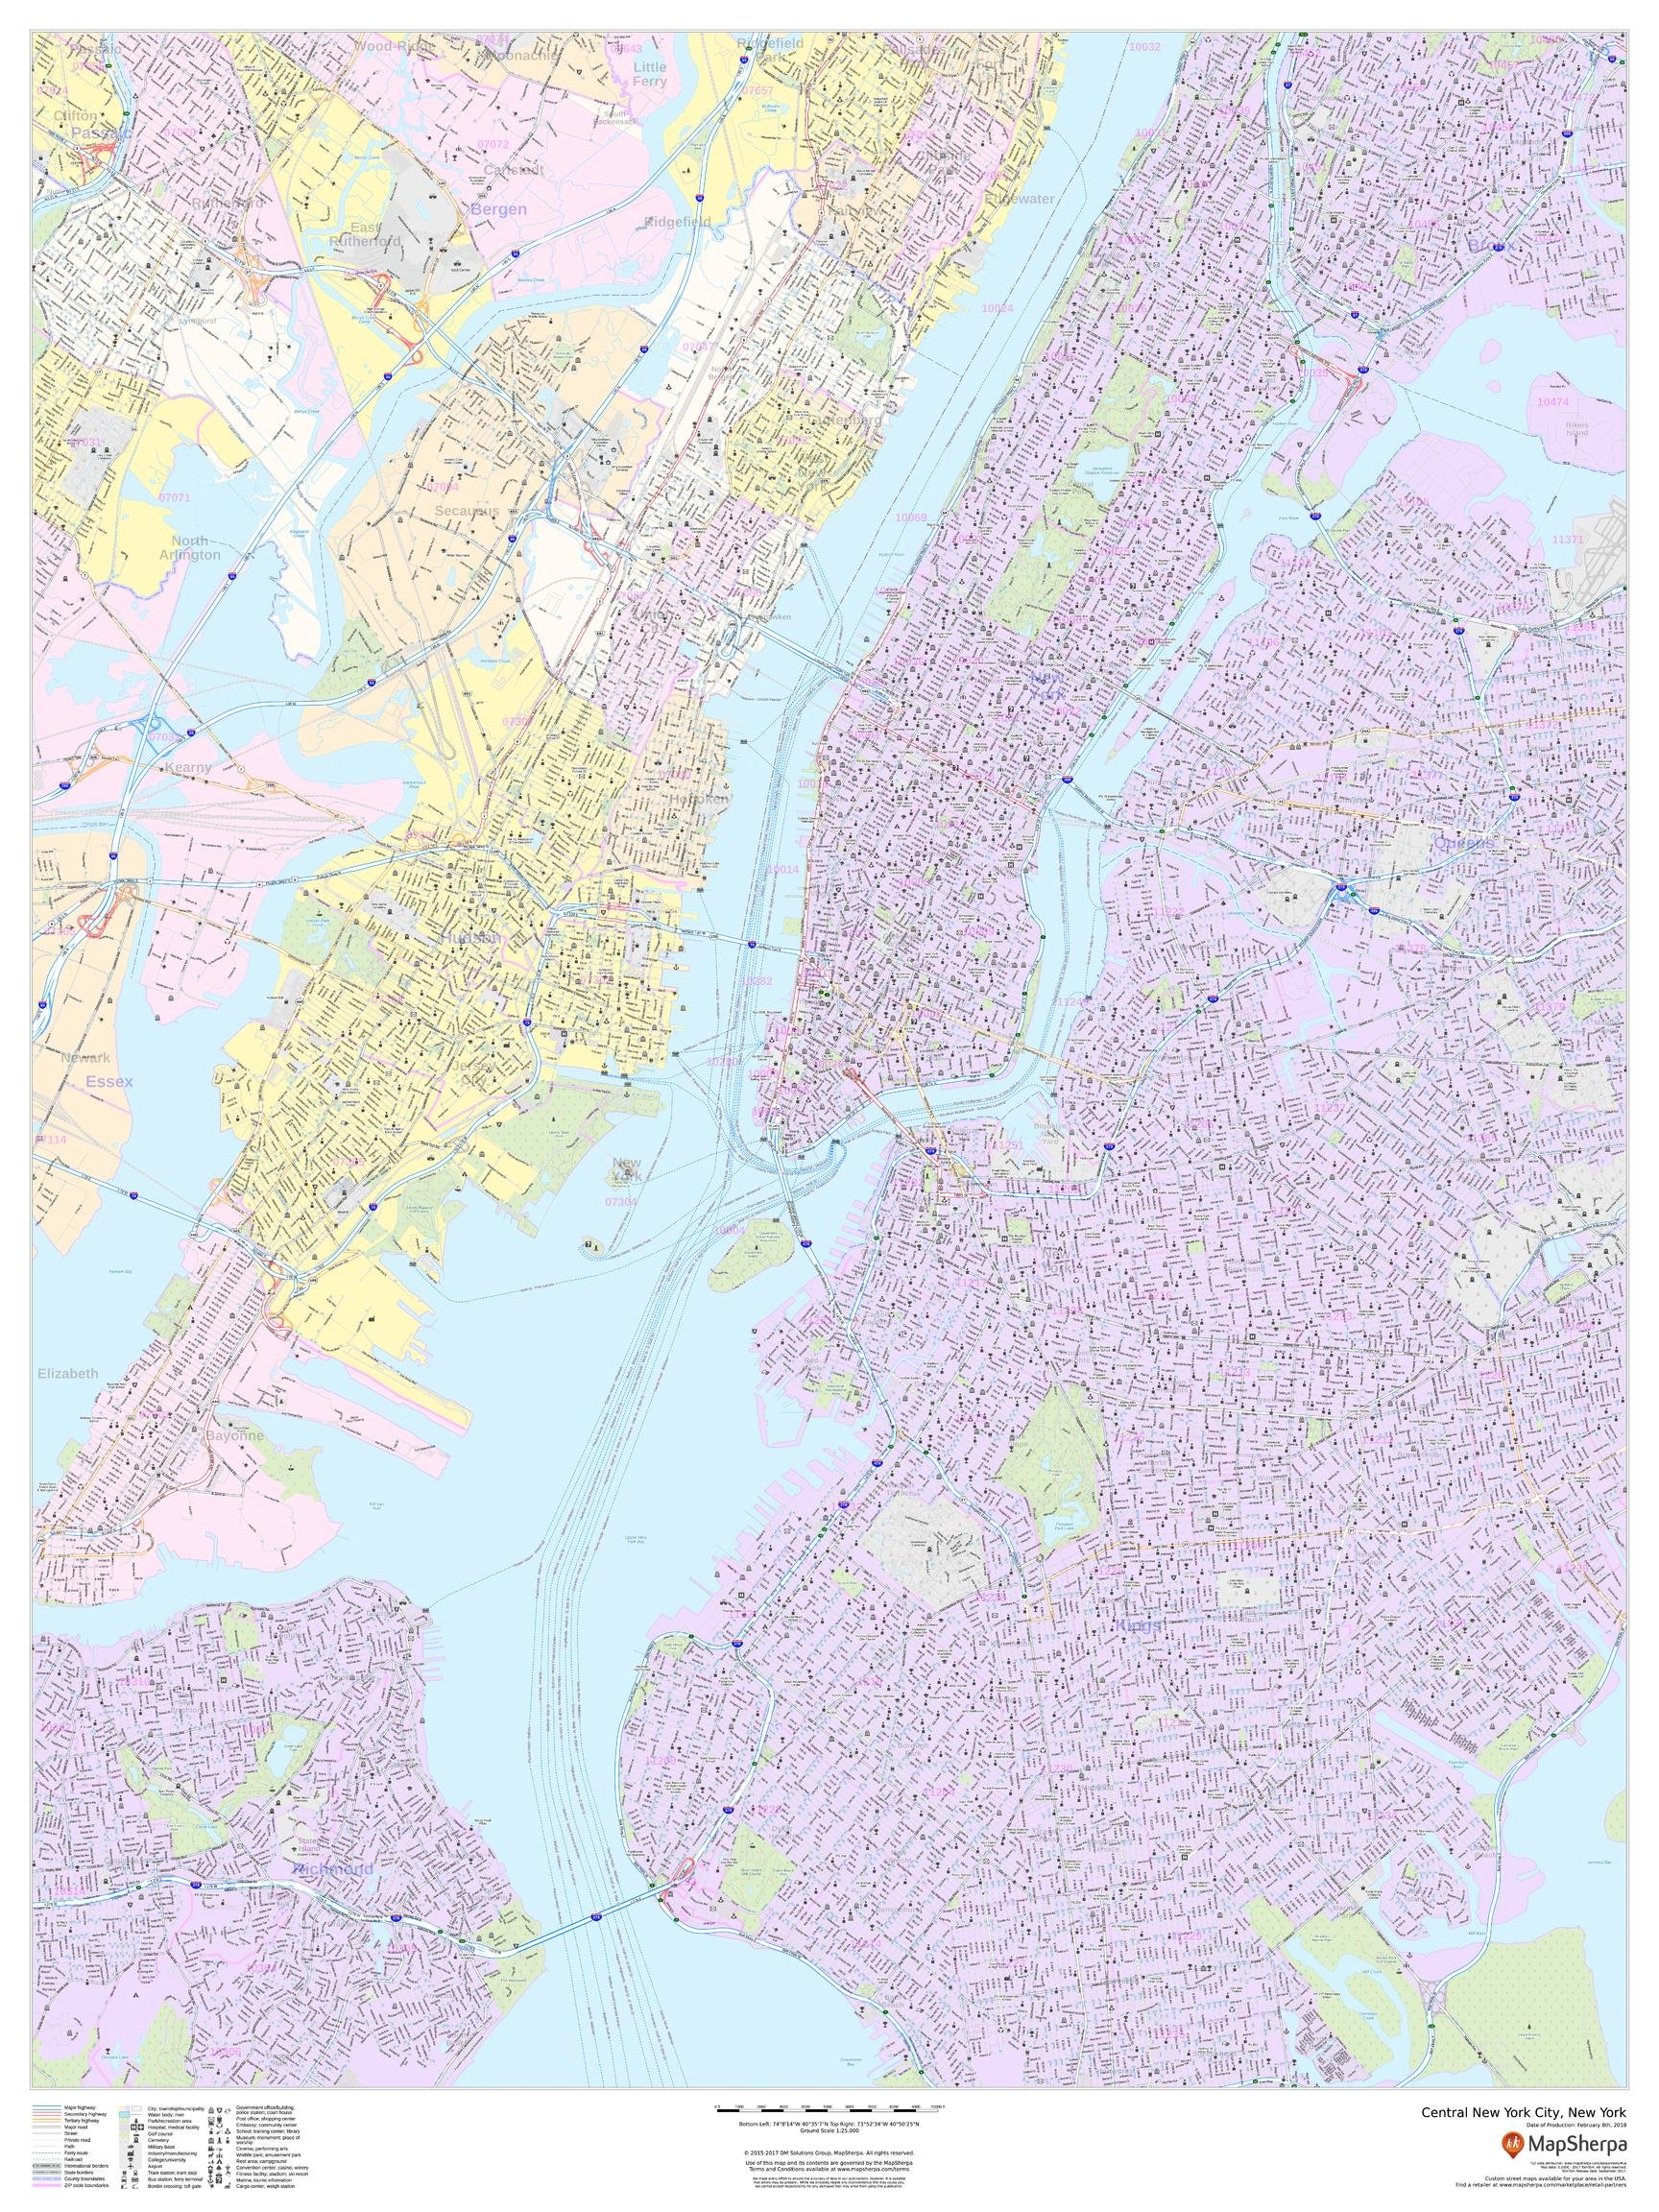 Central New York City, New York - Portrait - 36 x 48 inches - Laminated - Wall Map